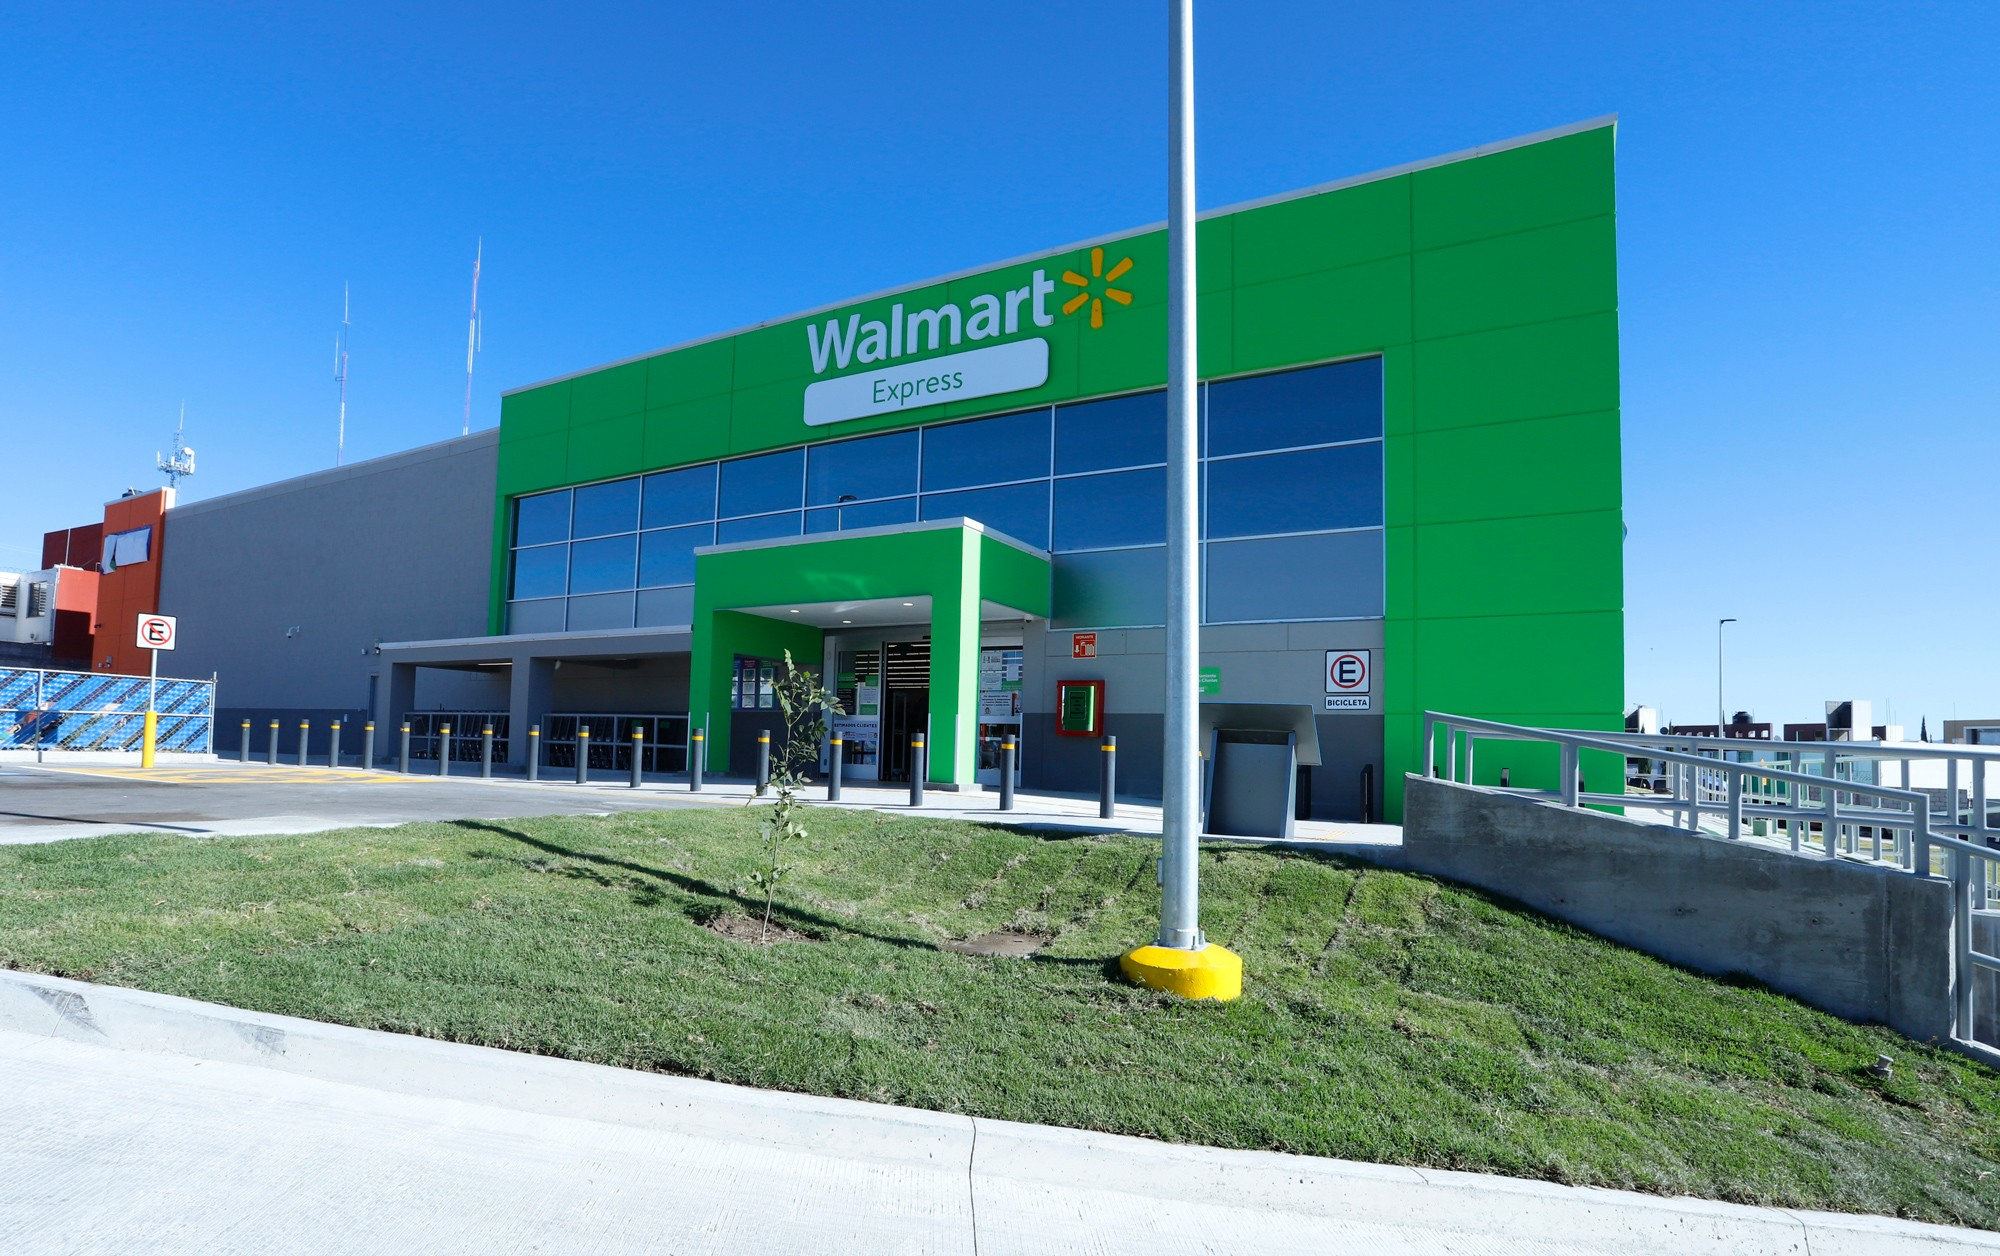 The exterior of a Walmart Express in Mexico